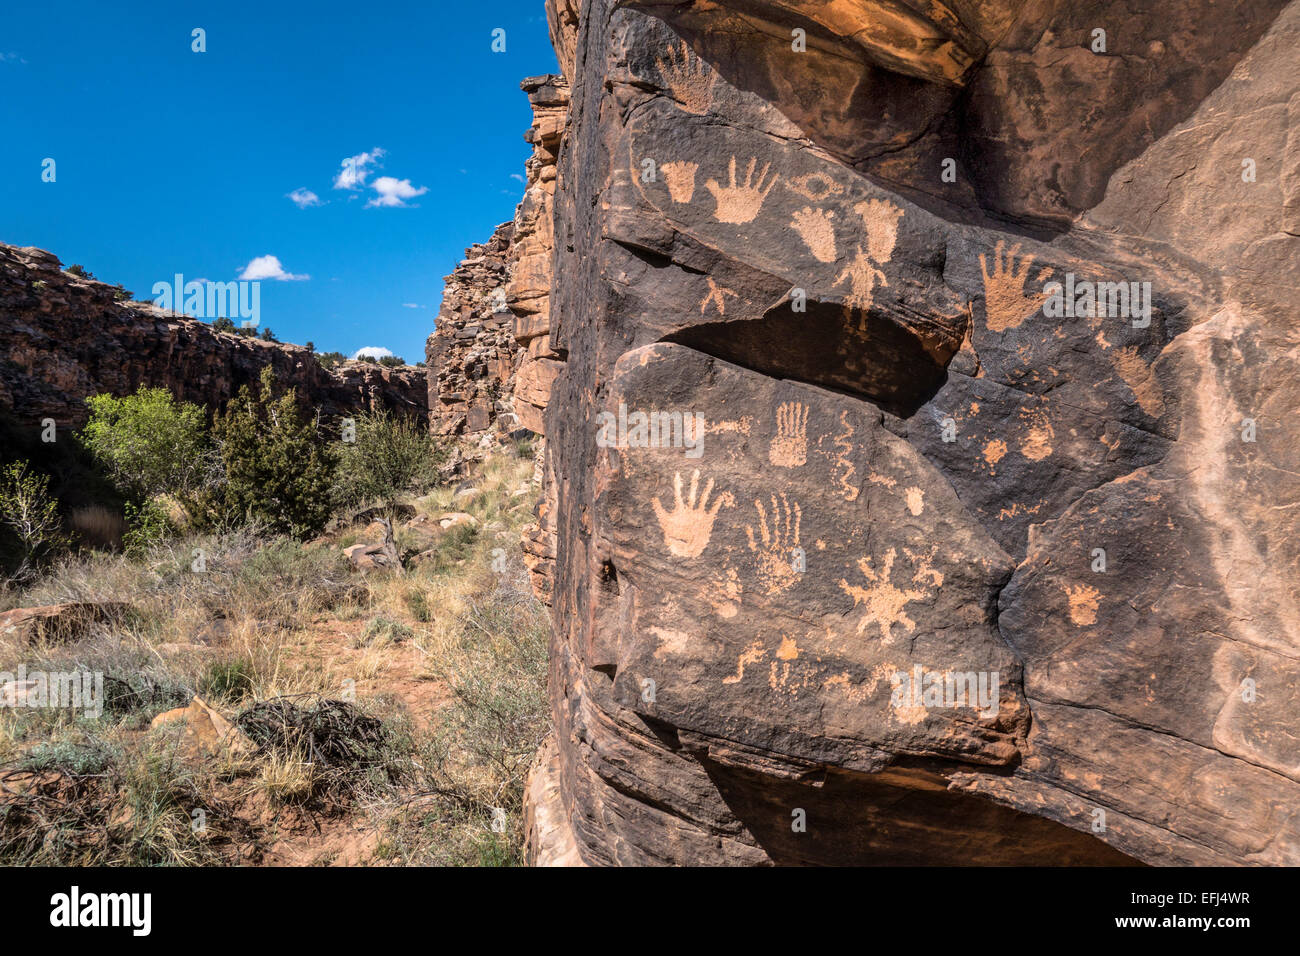 Ancient Puebloan or Anasazi petroglyphs in the upper Little Colorado River basin, Arizona, USA - Stock Image